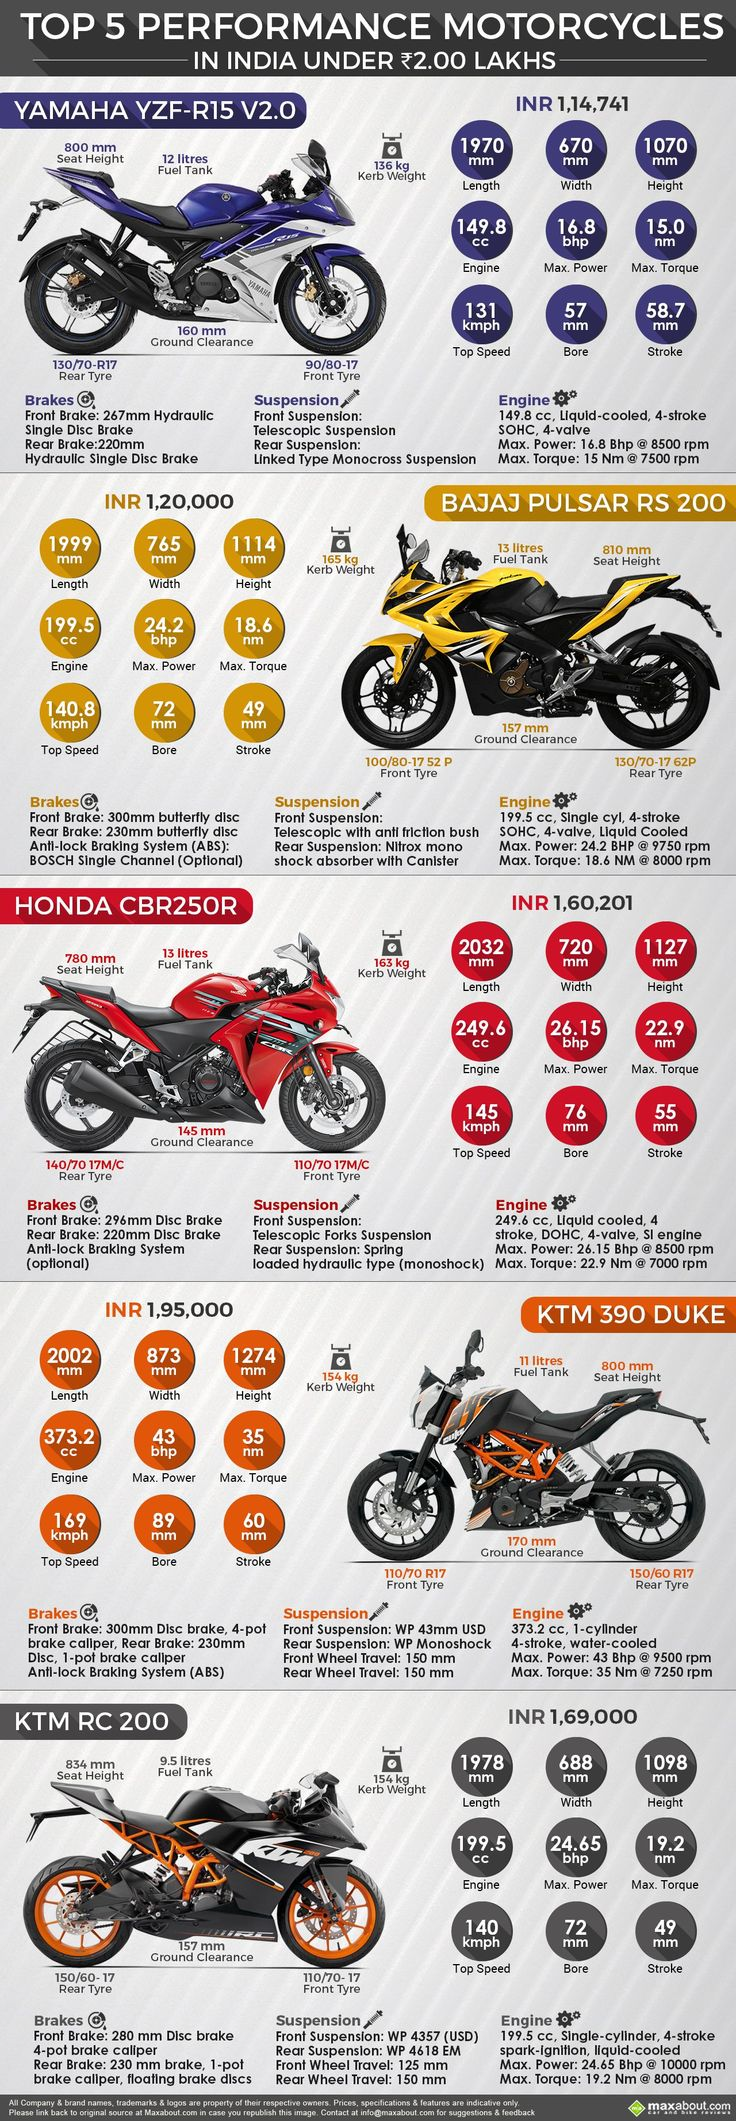 Top 5 150cc 160cc motorcycles in the country indian cars bikes - Top 5 Performance Motorcycles In India Under Inr 2 Lakh